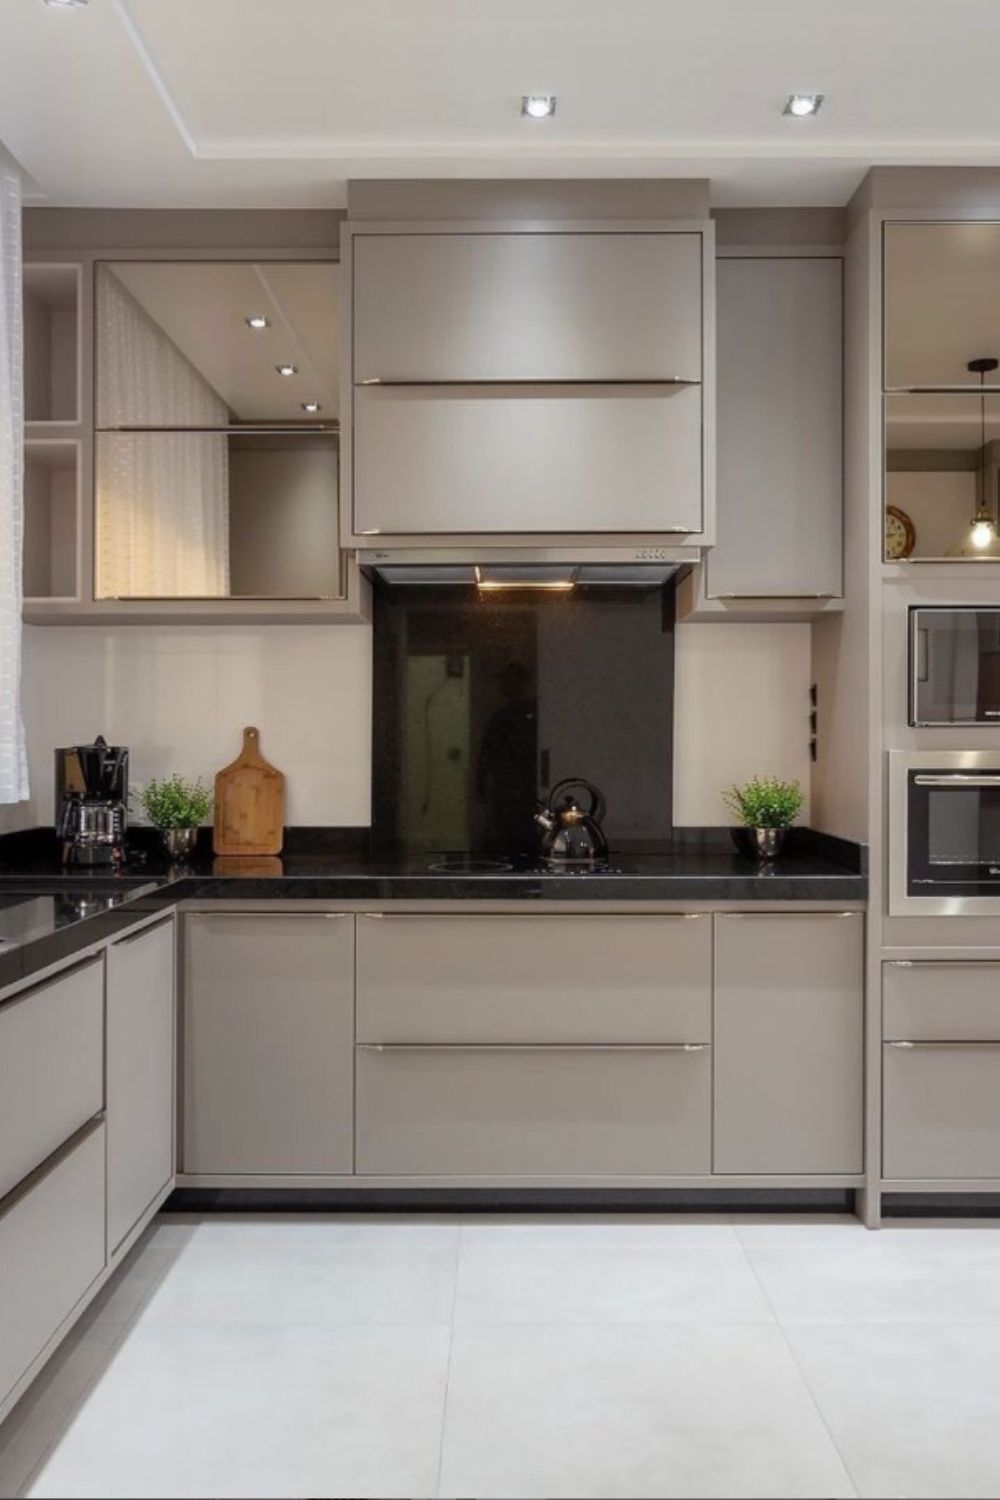 Black and gray in the kitchen